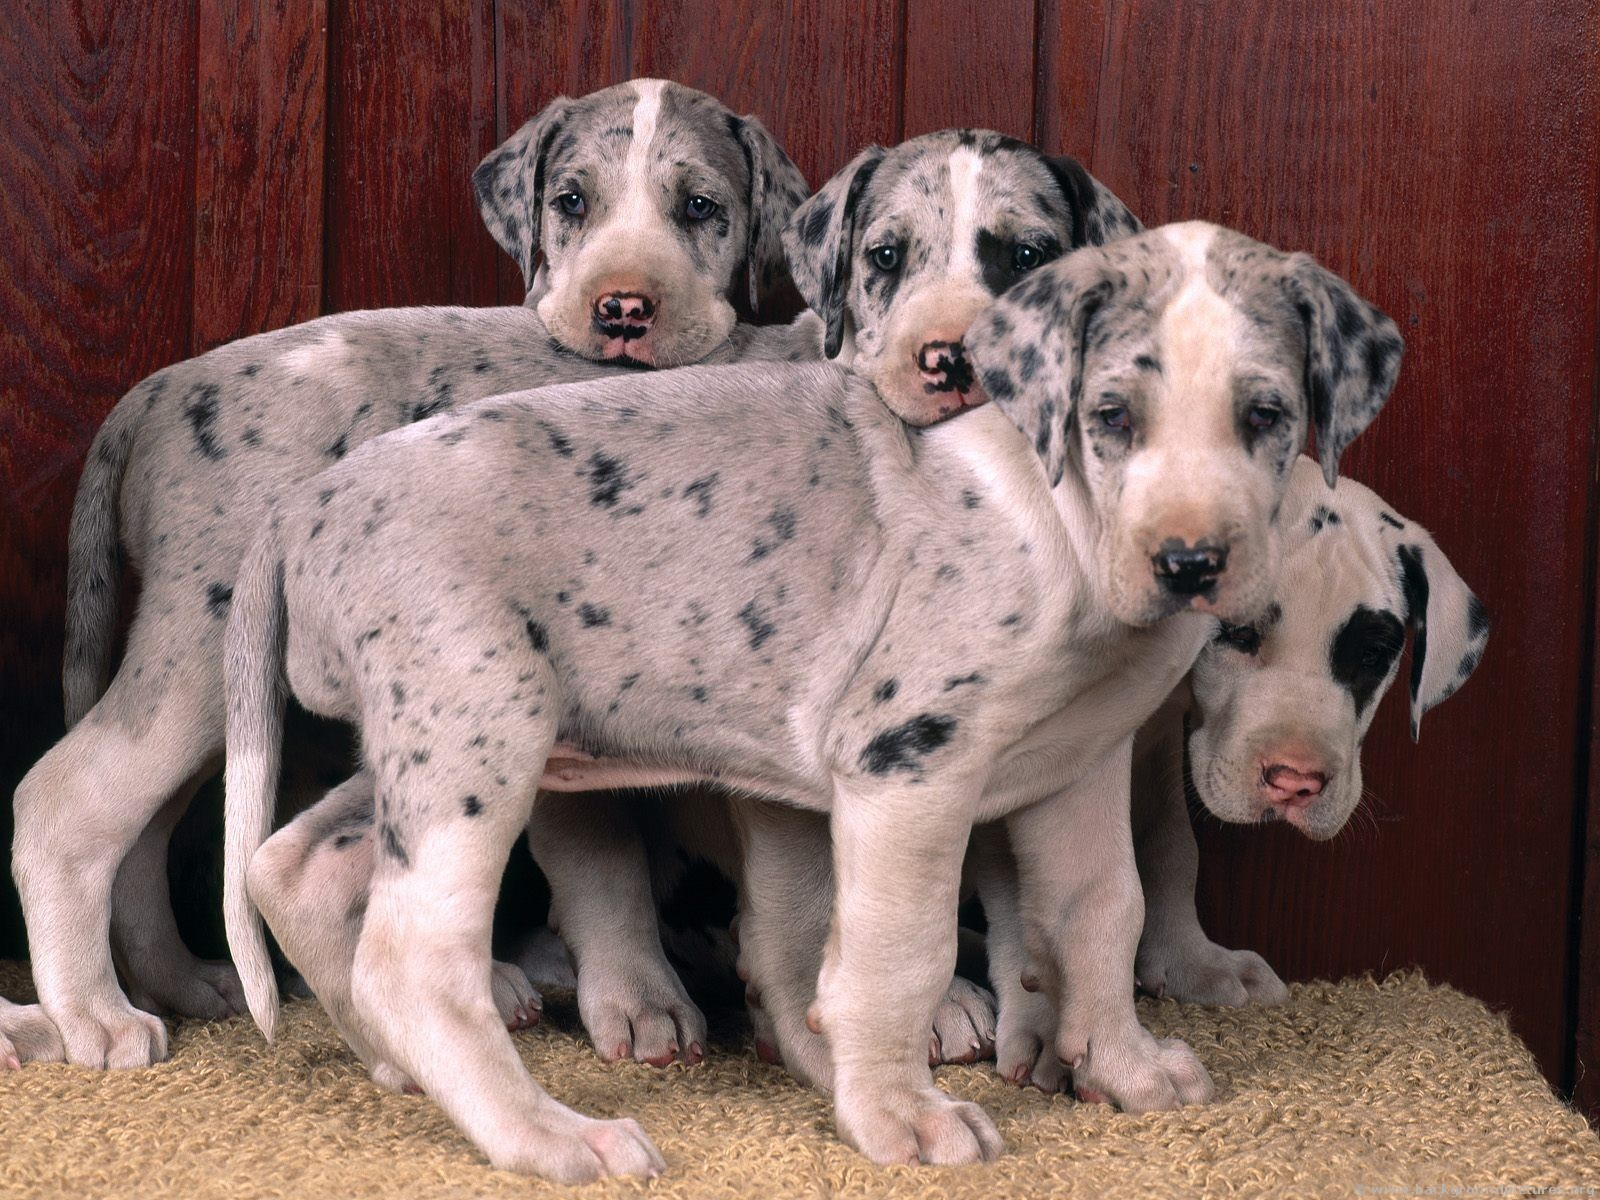 Great-Dane-puppy-great-danes-15342697-1600-1200